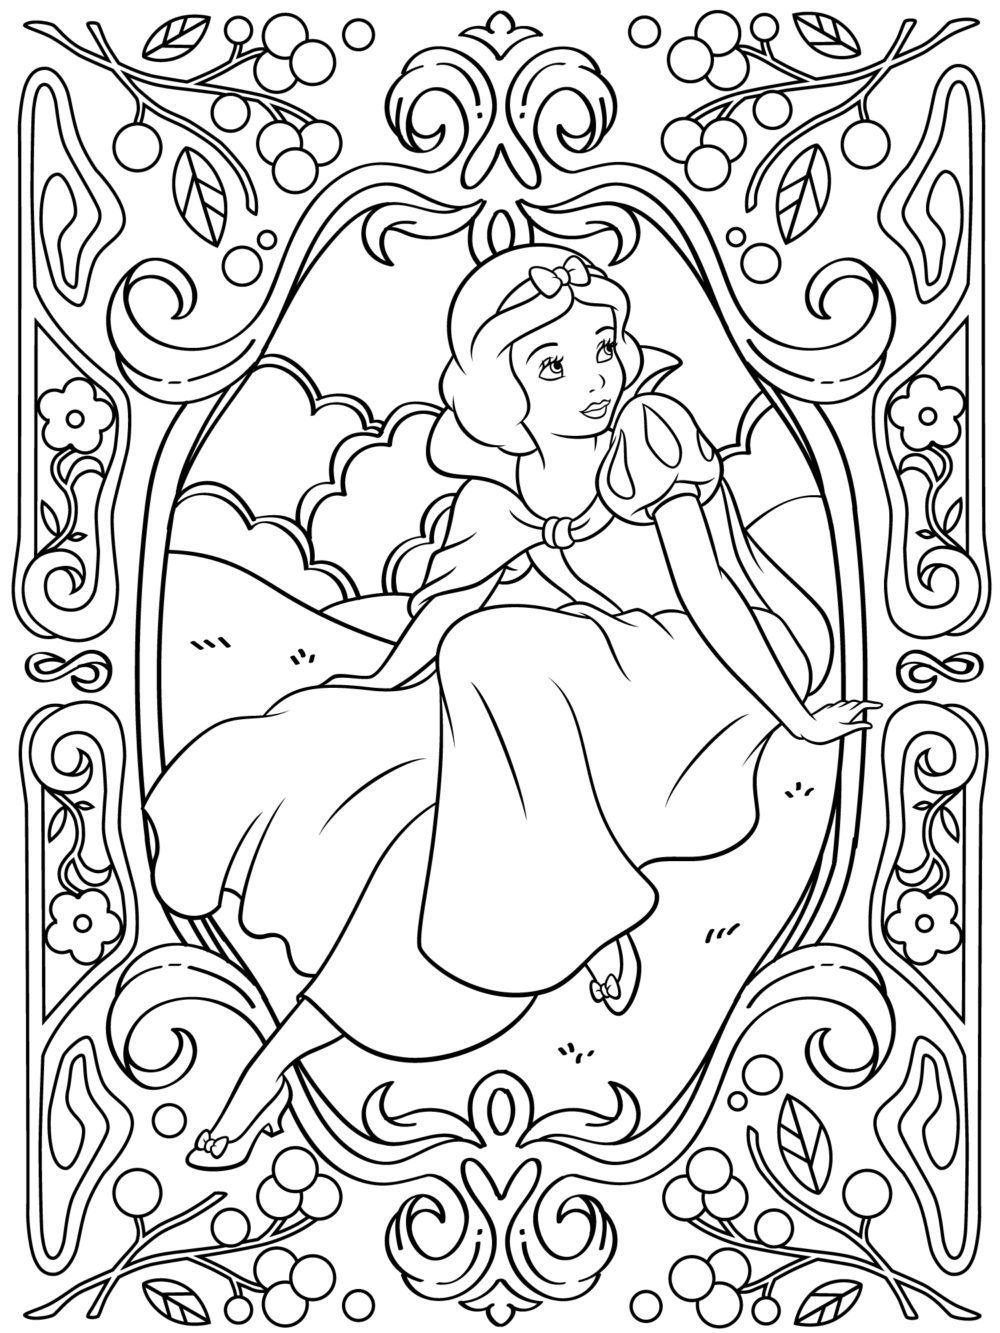 Celebrate national coloring book day with disney style snow white